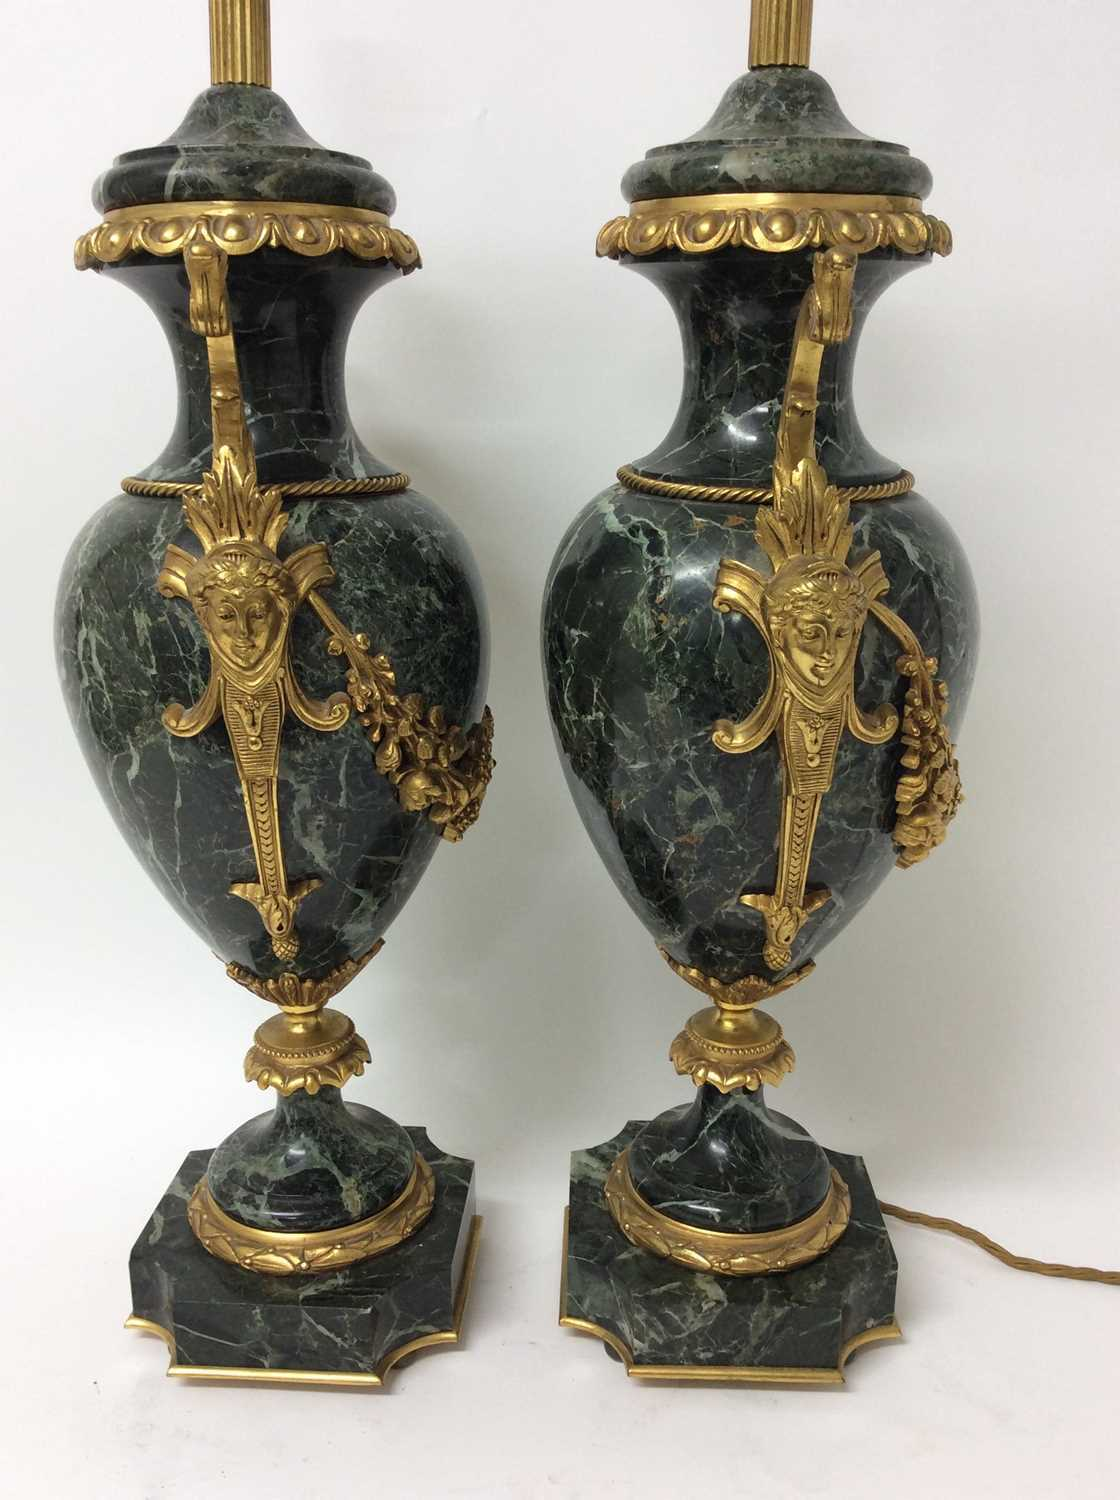 Pair of 18th century style gilt metal mounted verde antico marble table lamps, each of urn form with - Image 7 of 7